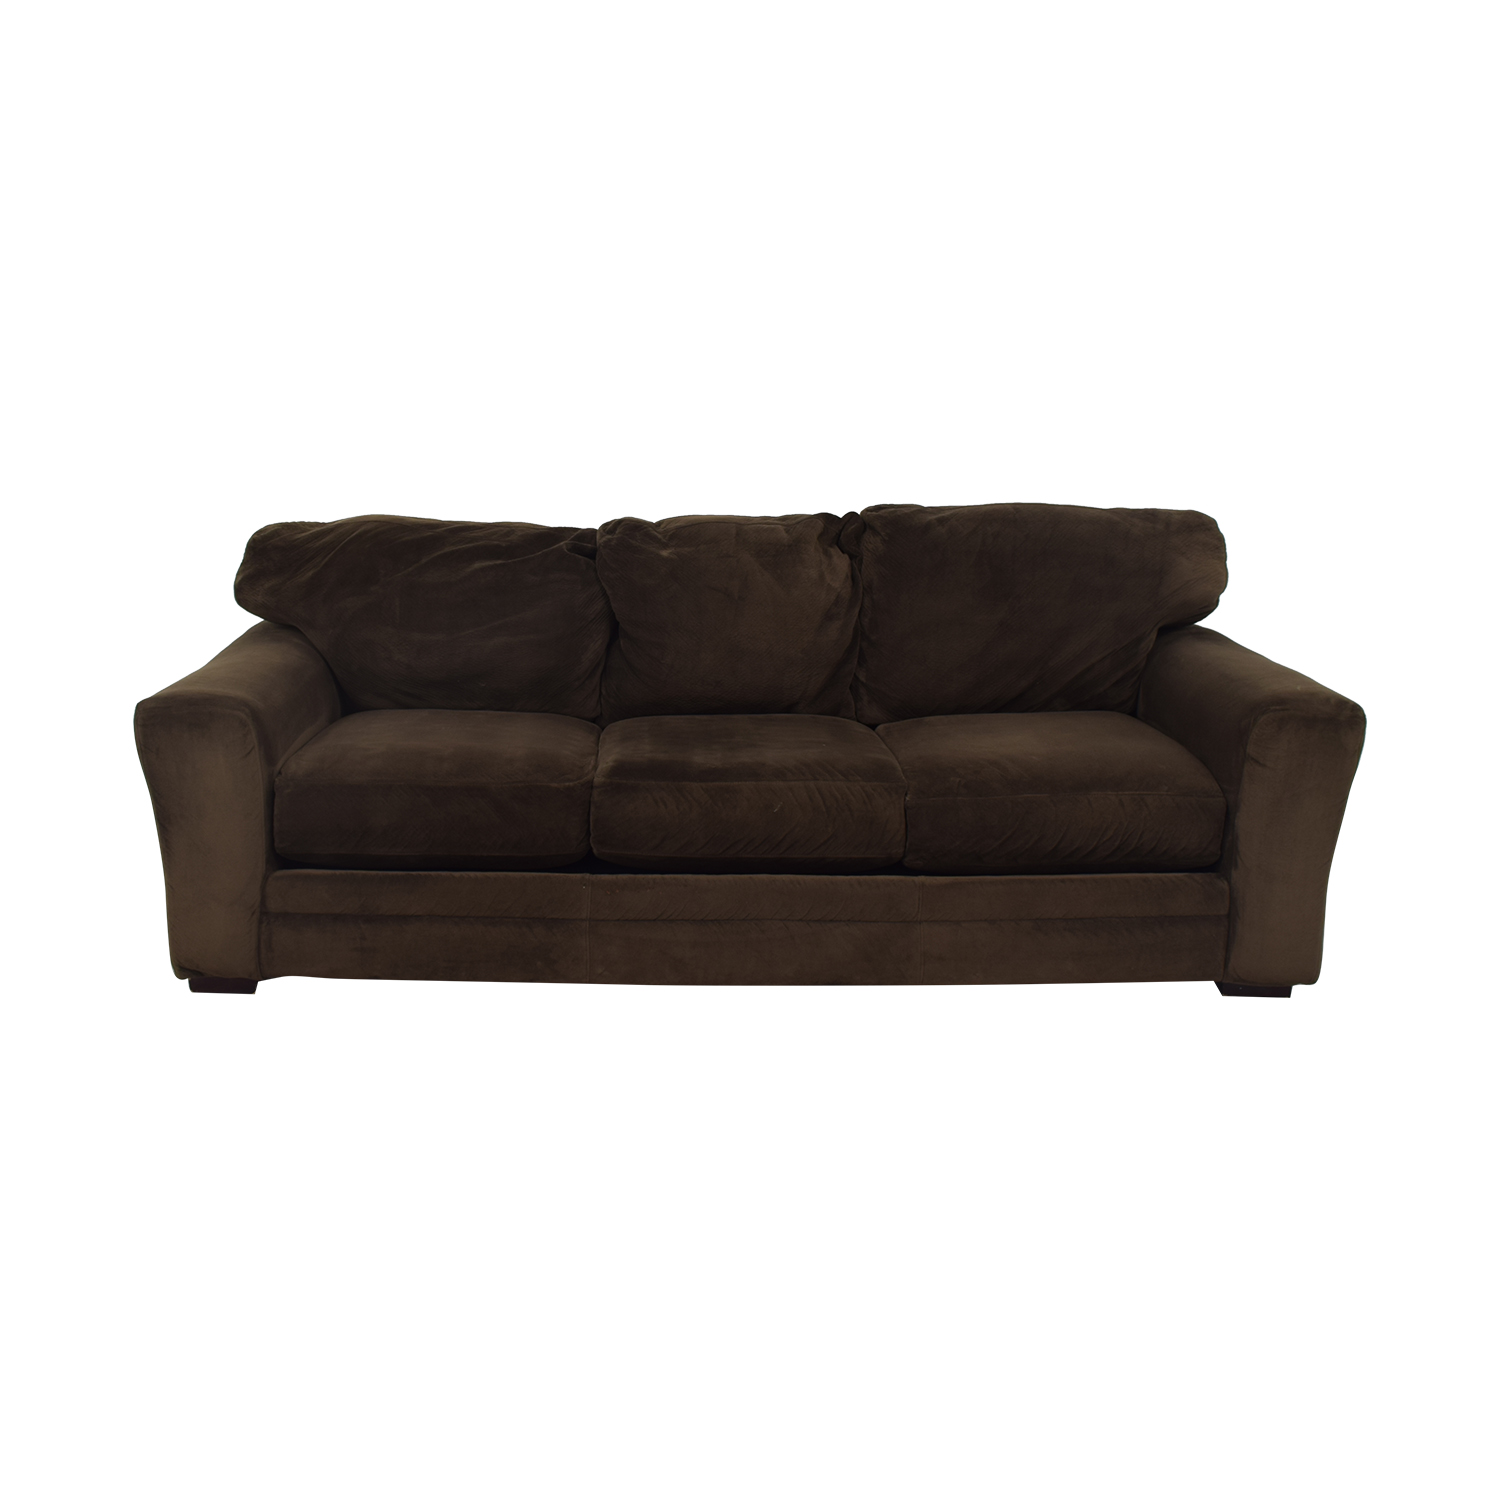 Jackson Furniture Sofa / Classic Sofas